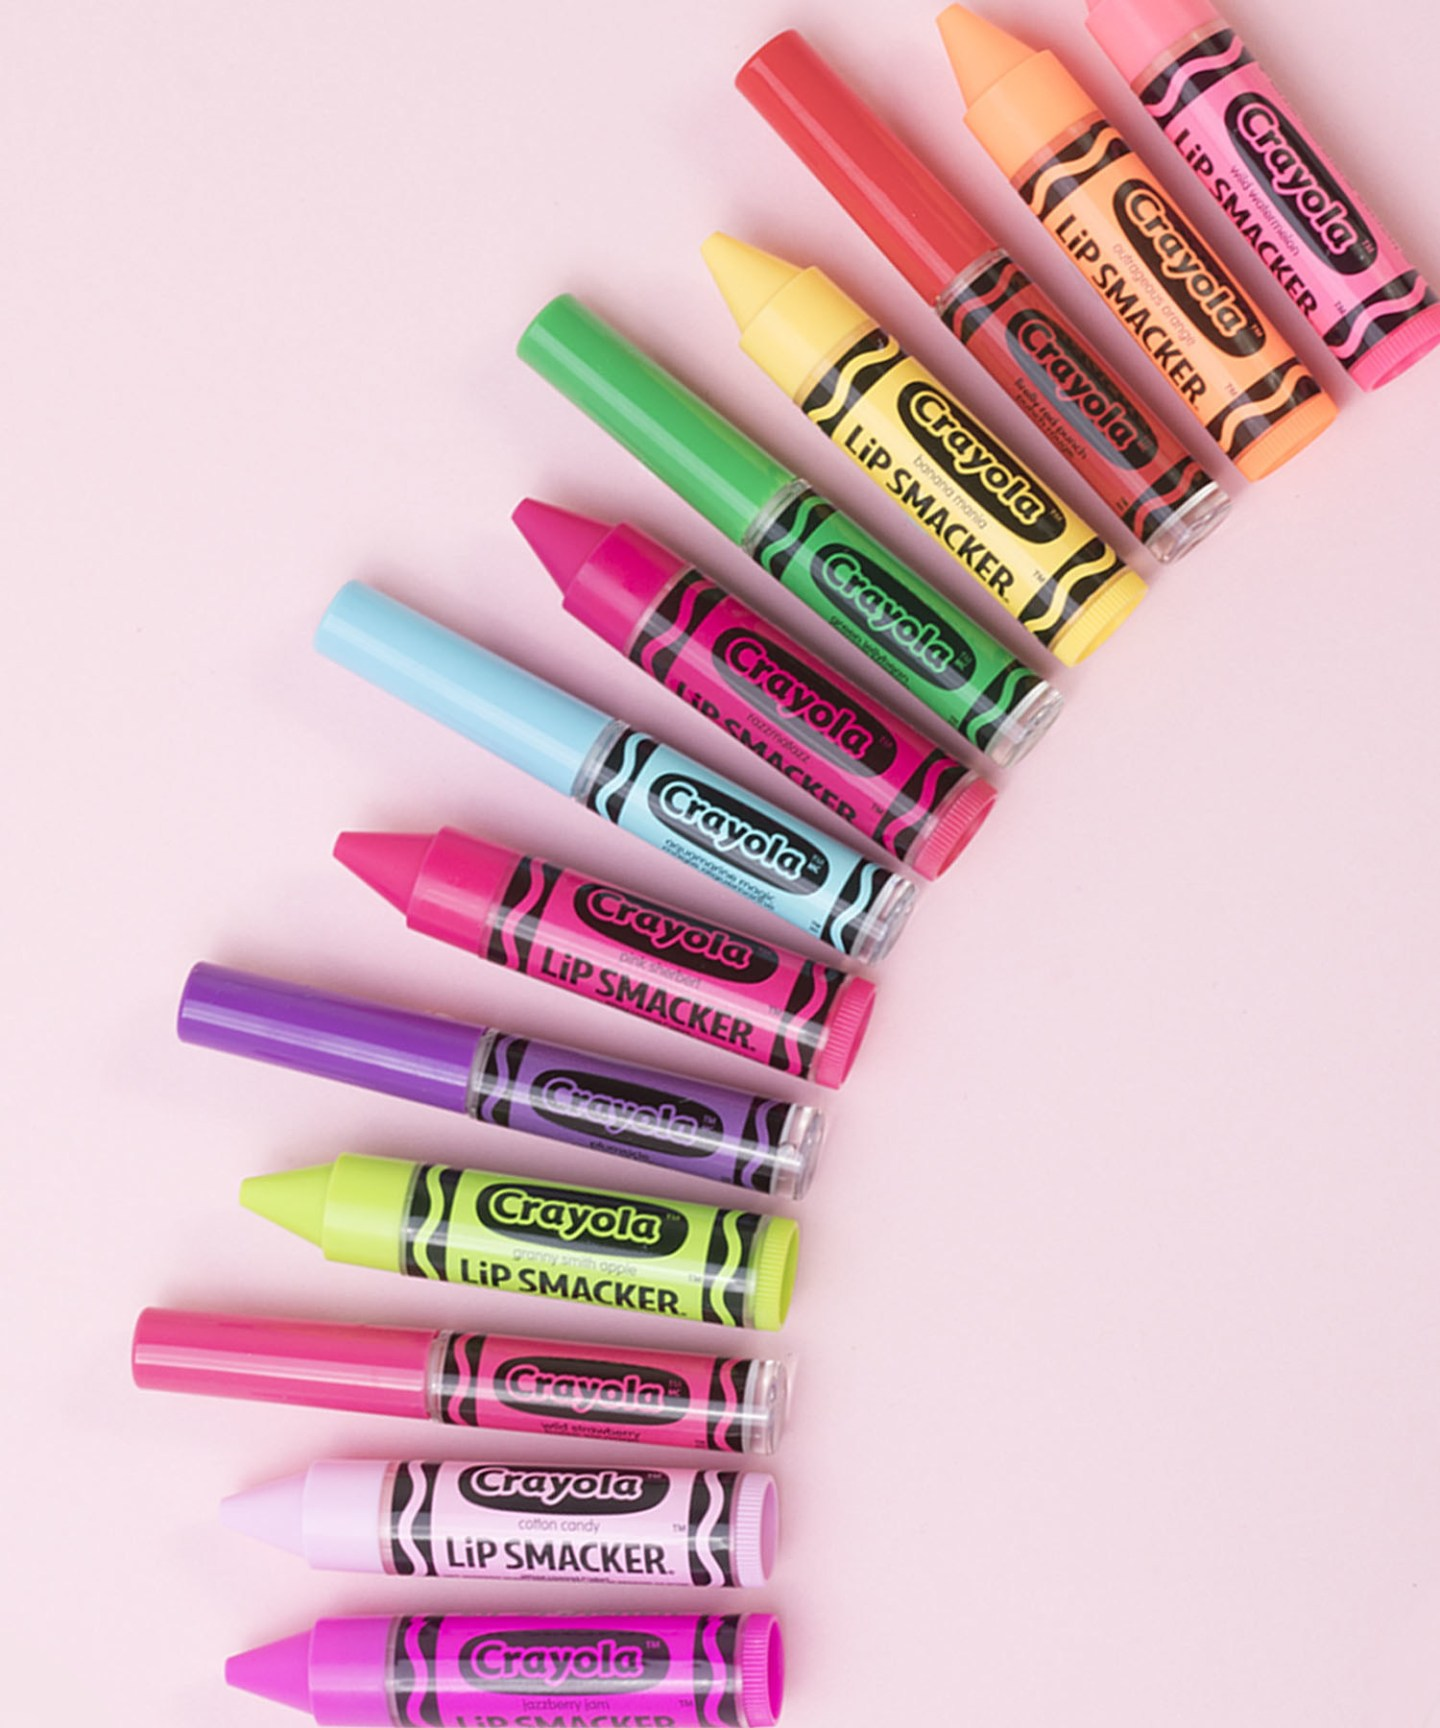 LiP SMACKER and Crayola Collaborate for a New Collection